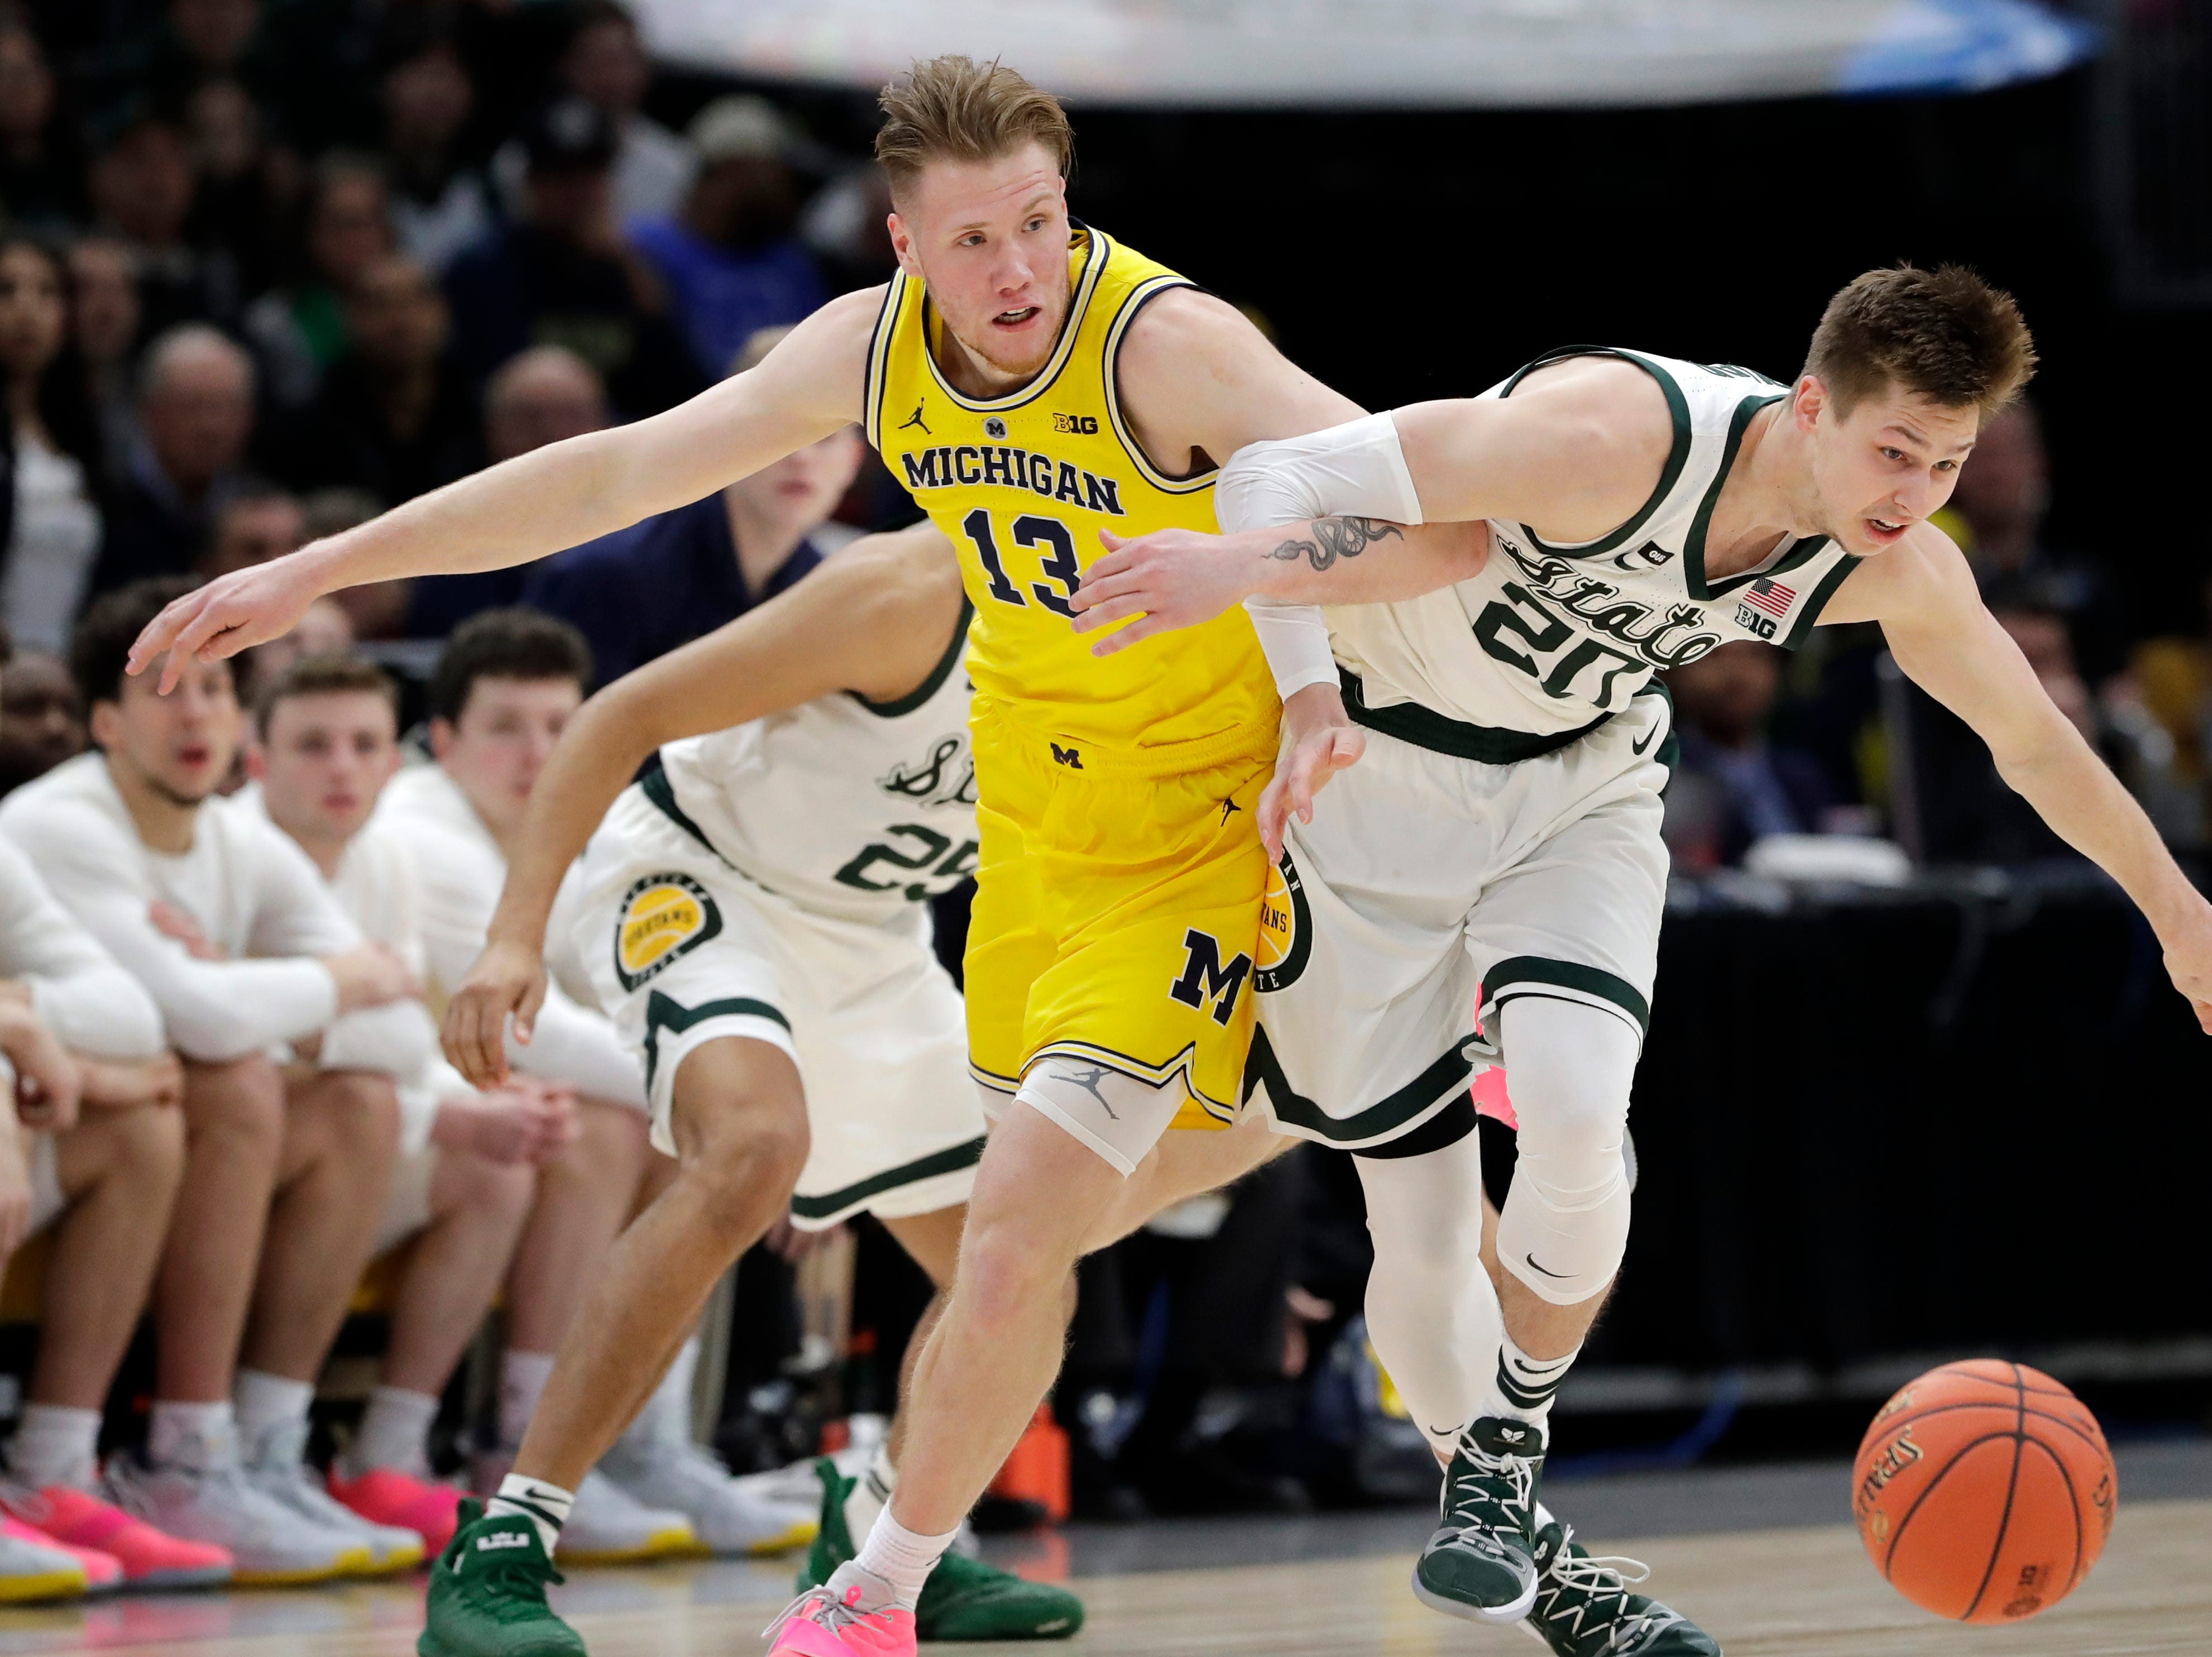 Michigan State's Matt McQuaid (20) and Michigan's Ignas Brazdeikis (13) battle for a loose ball during the first half of an NCAA college basketball championship game in the Big Ten Conference tournament, Sunday, March 17, 2019, in Chicago.